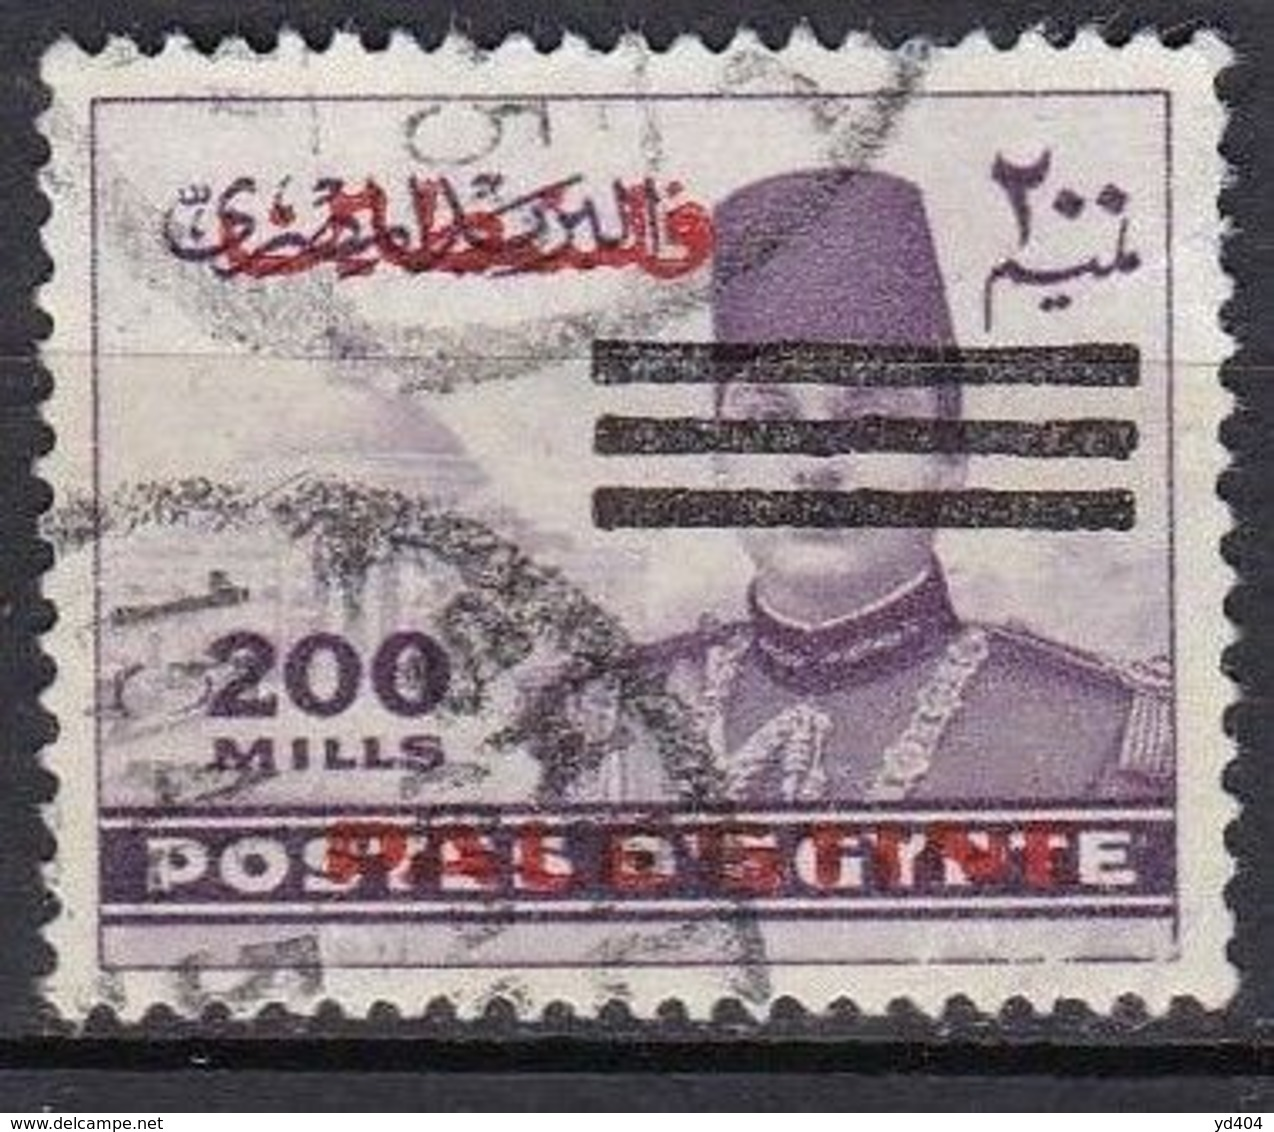 PS009 – PALESTINE – EGYPTIAN OCCUPATION – 1953 – FAROUK'S OBLITERATED PORTRAIT – SG 48 USED 40 € - Palestine